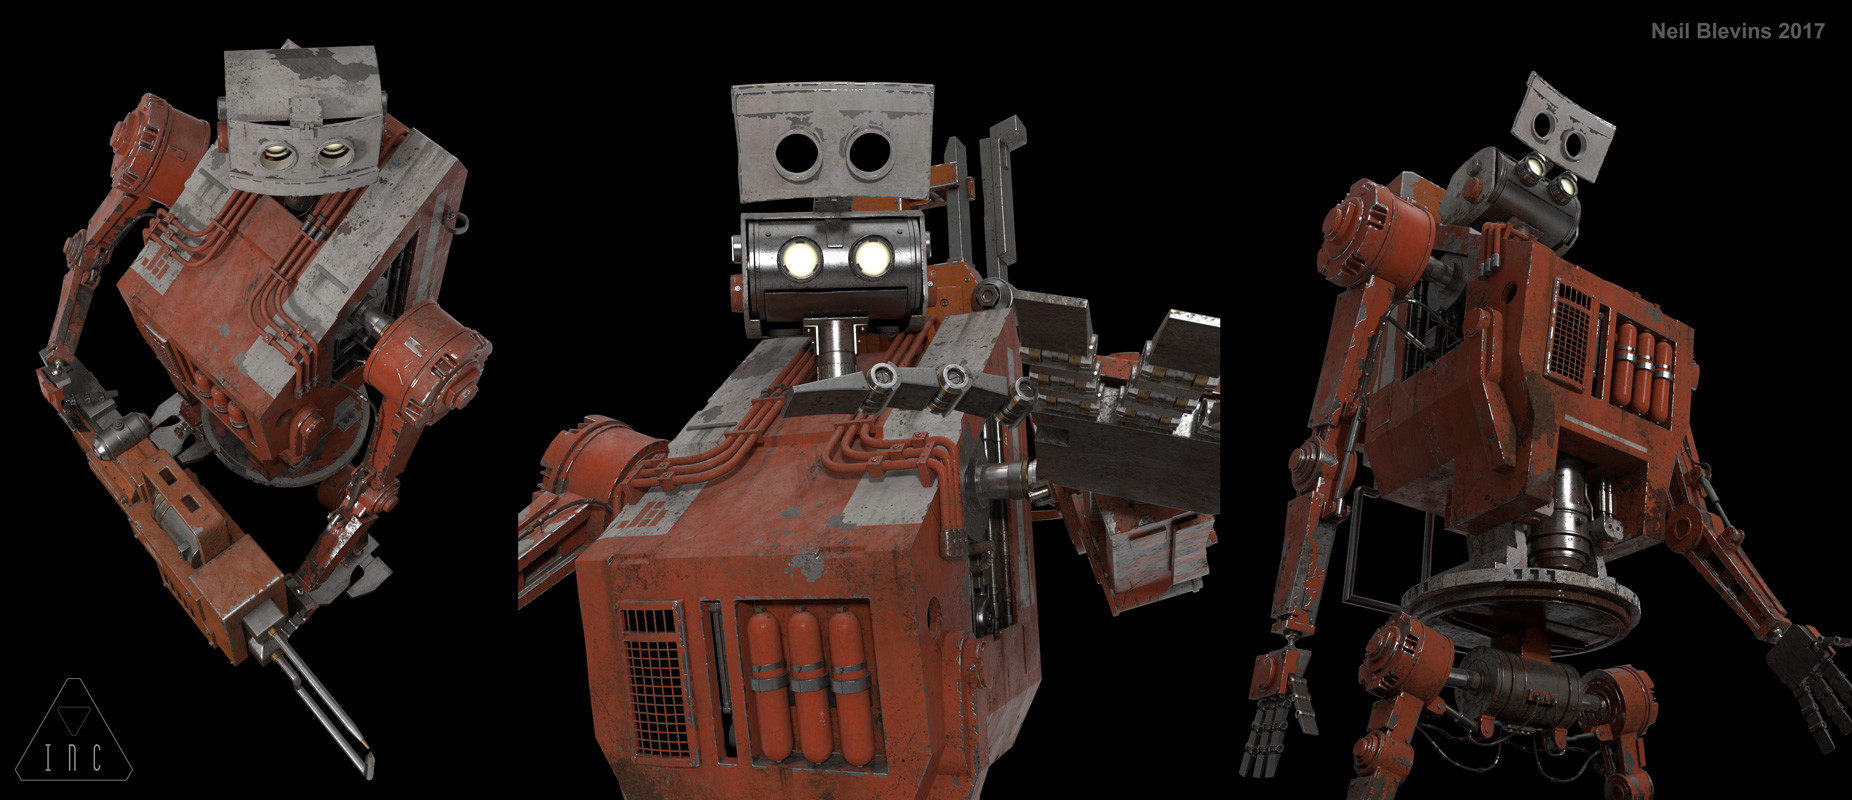 Neil blevins inc the robot 14 textured poses2